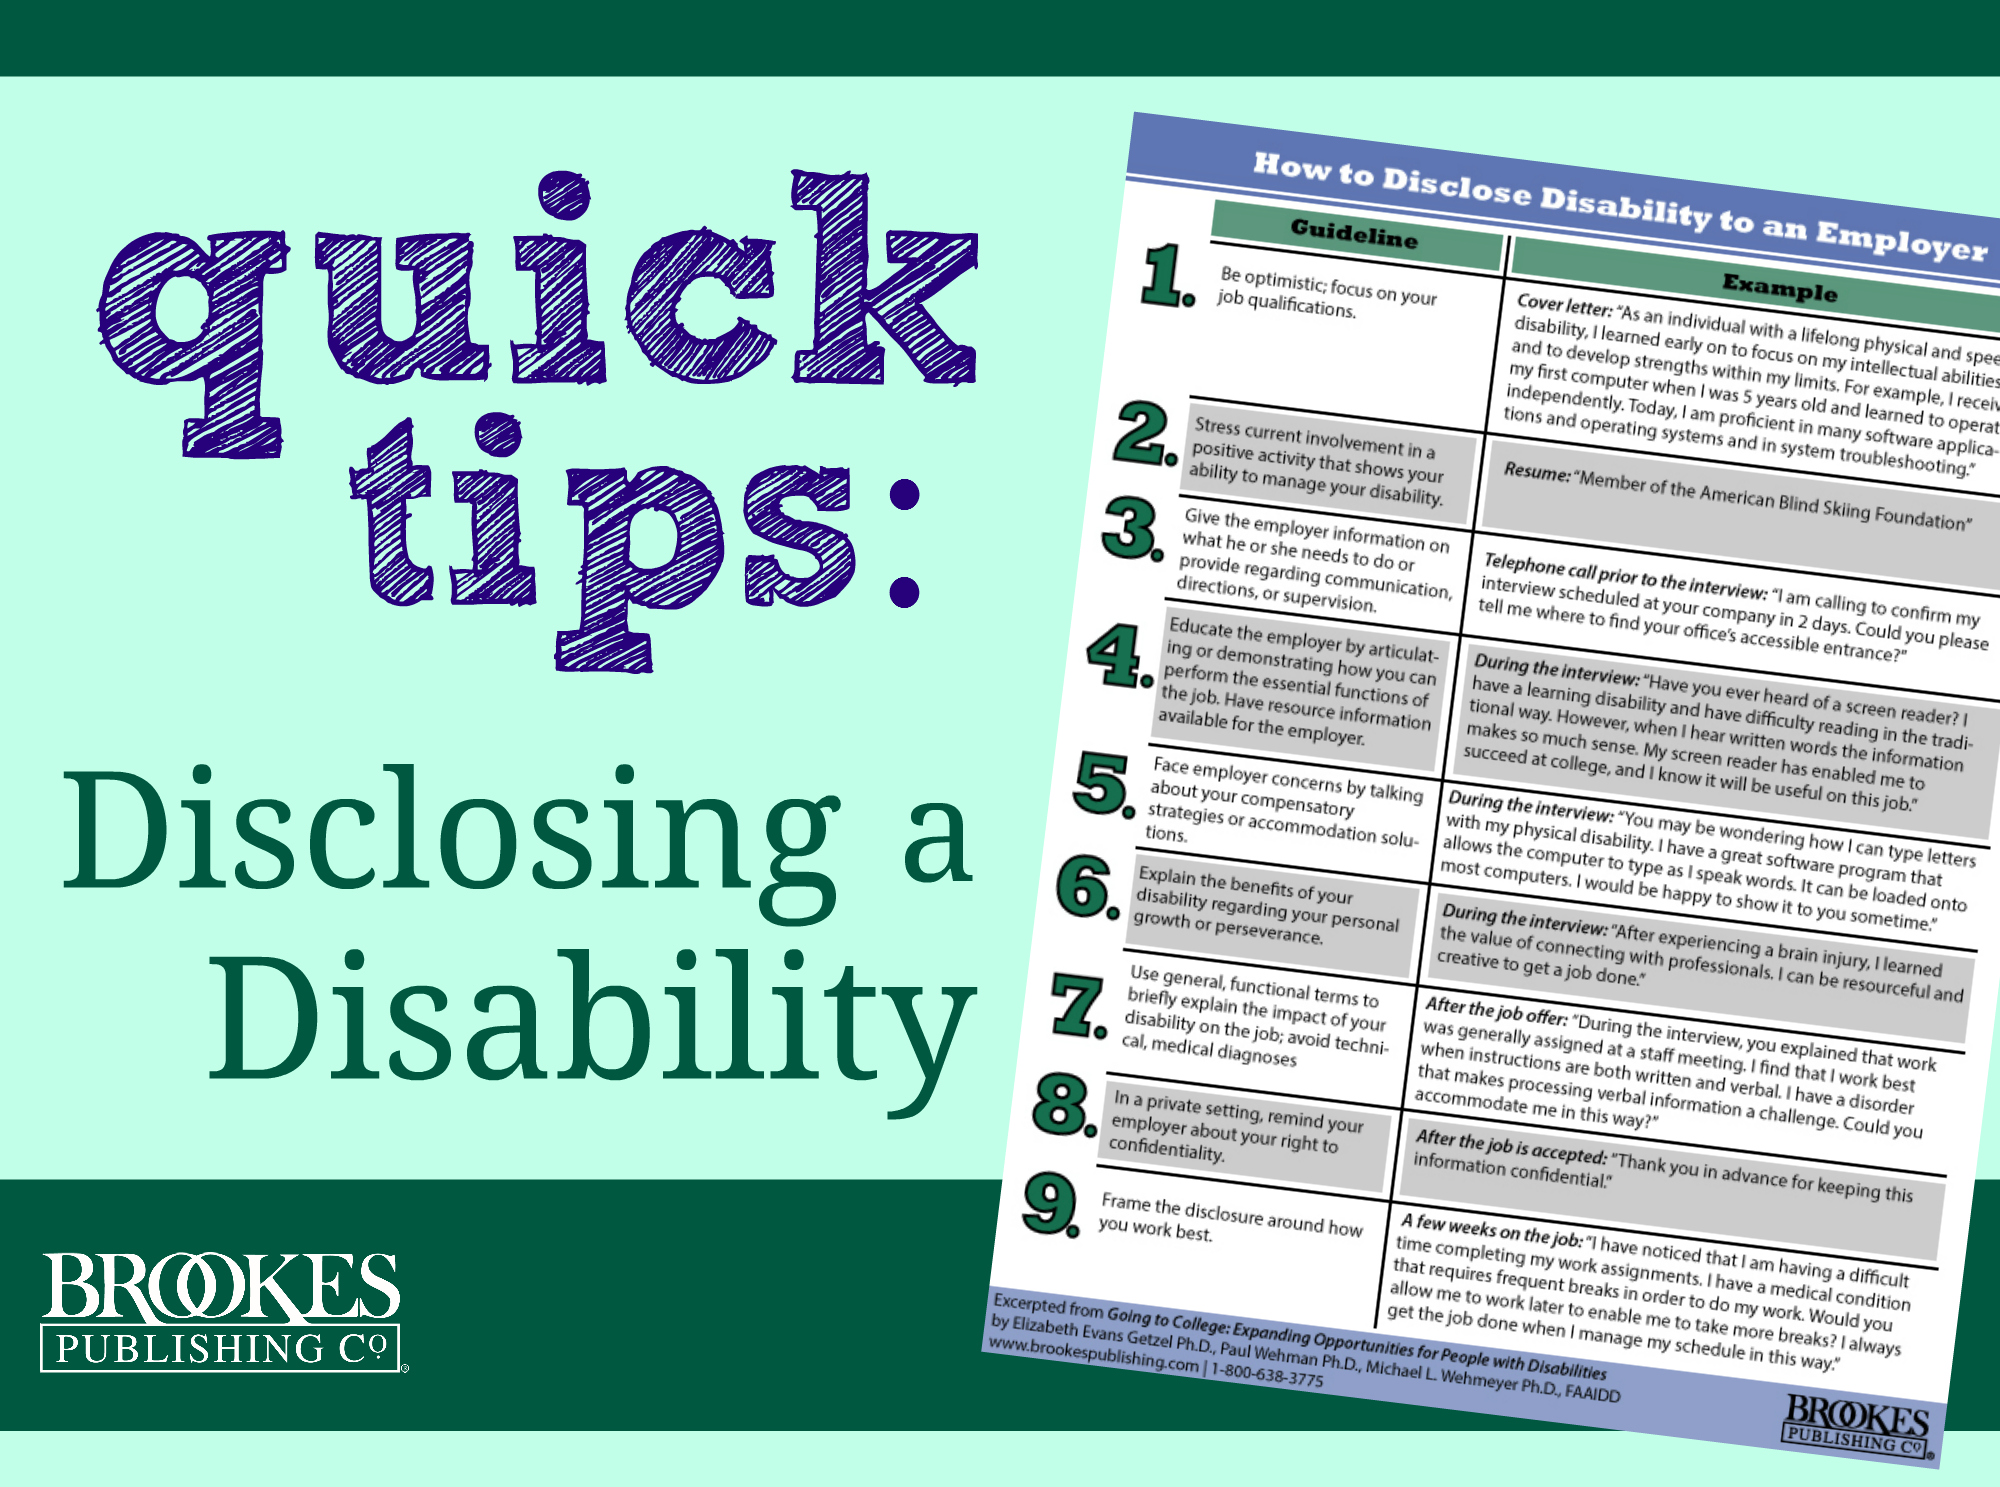 Inclusion QuickTips: Disclosing a Disability